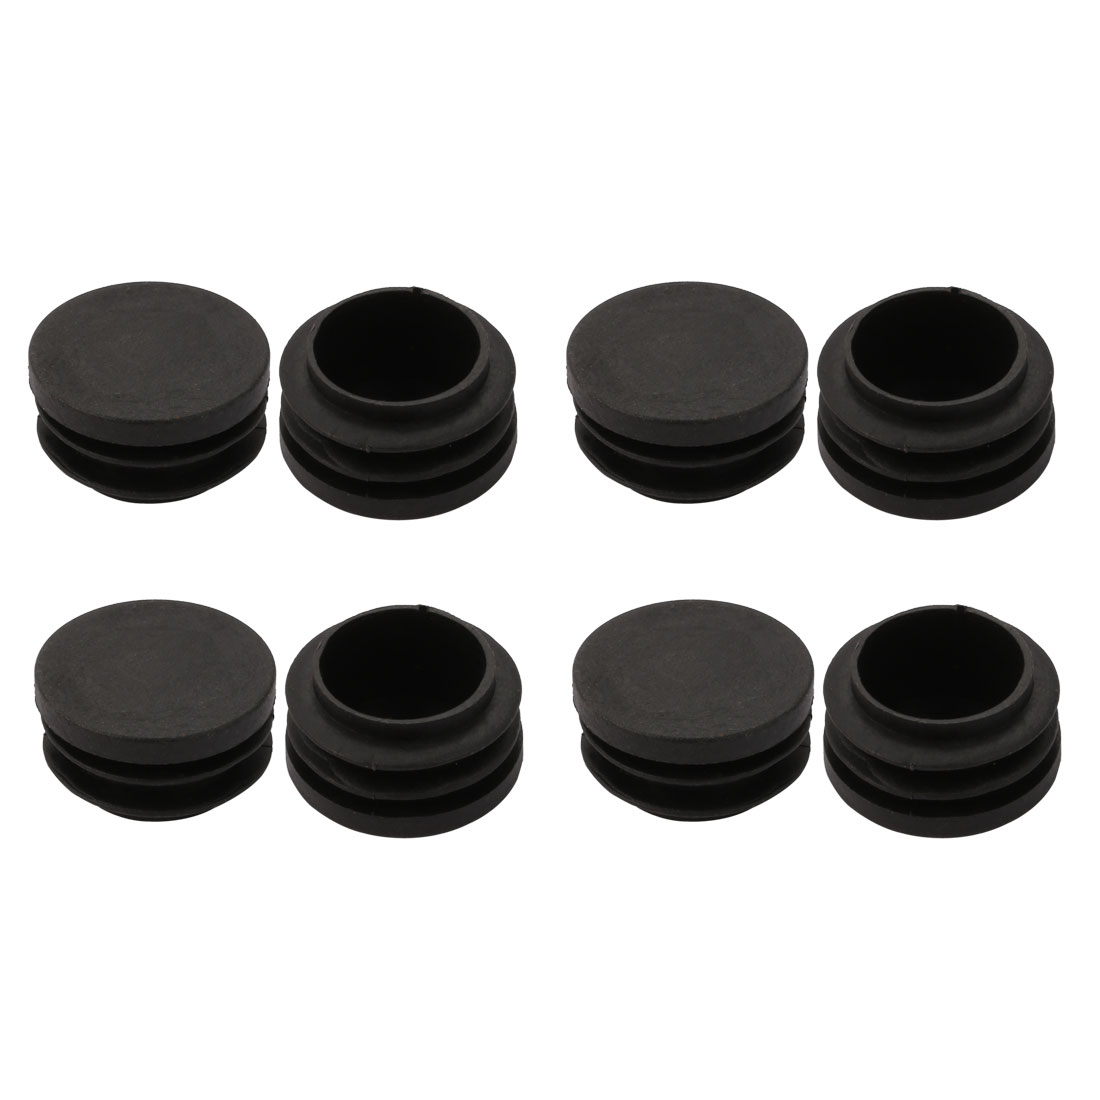 8pcs 35mm Dia Pipe Tube Insert Chair Leg Cap Round Black Plastic Tubing Plug